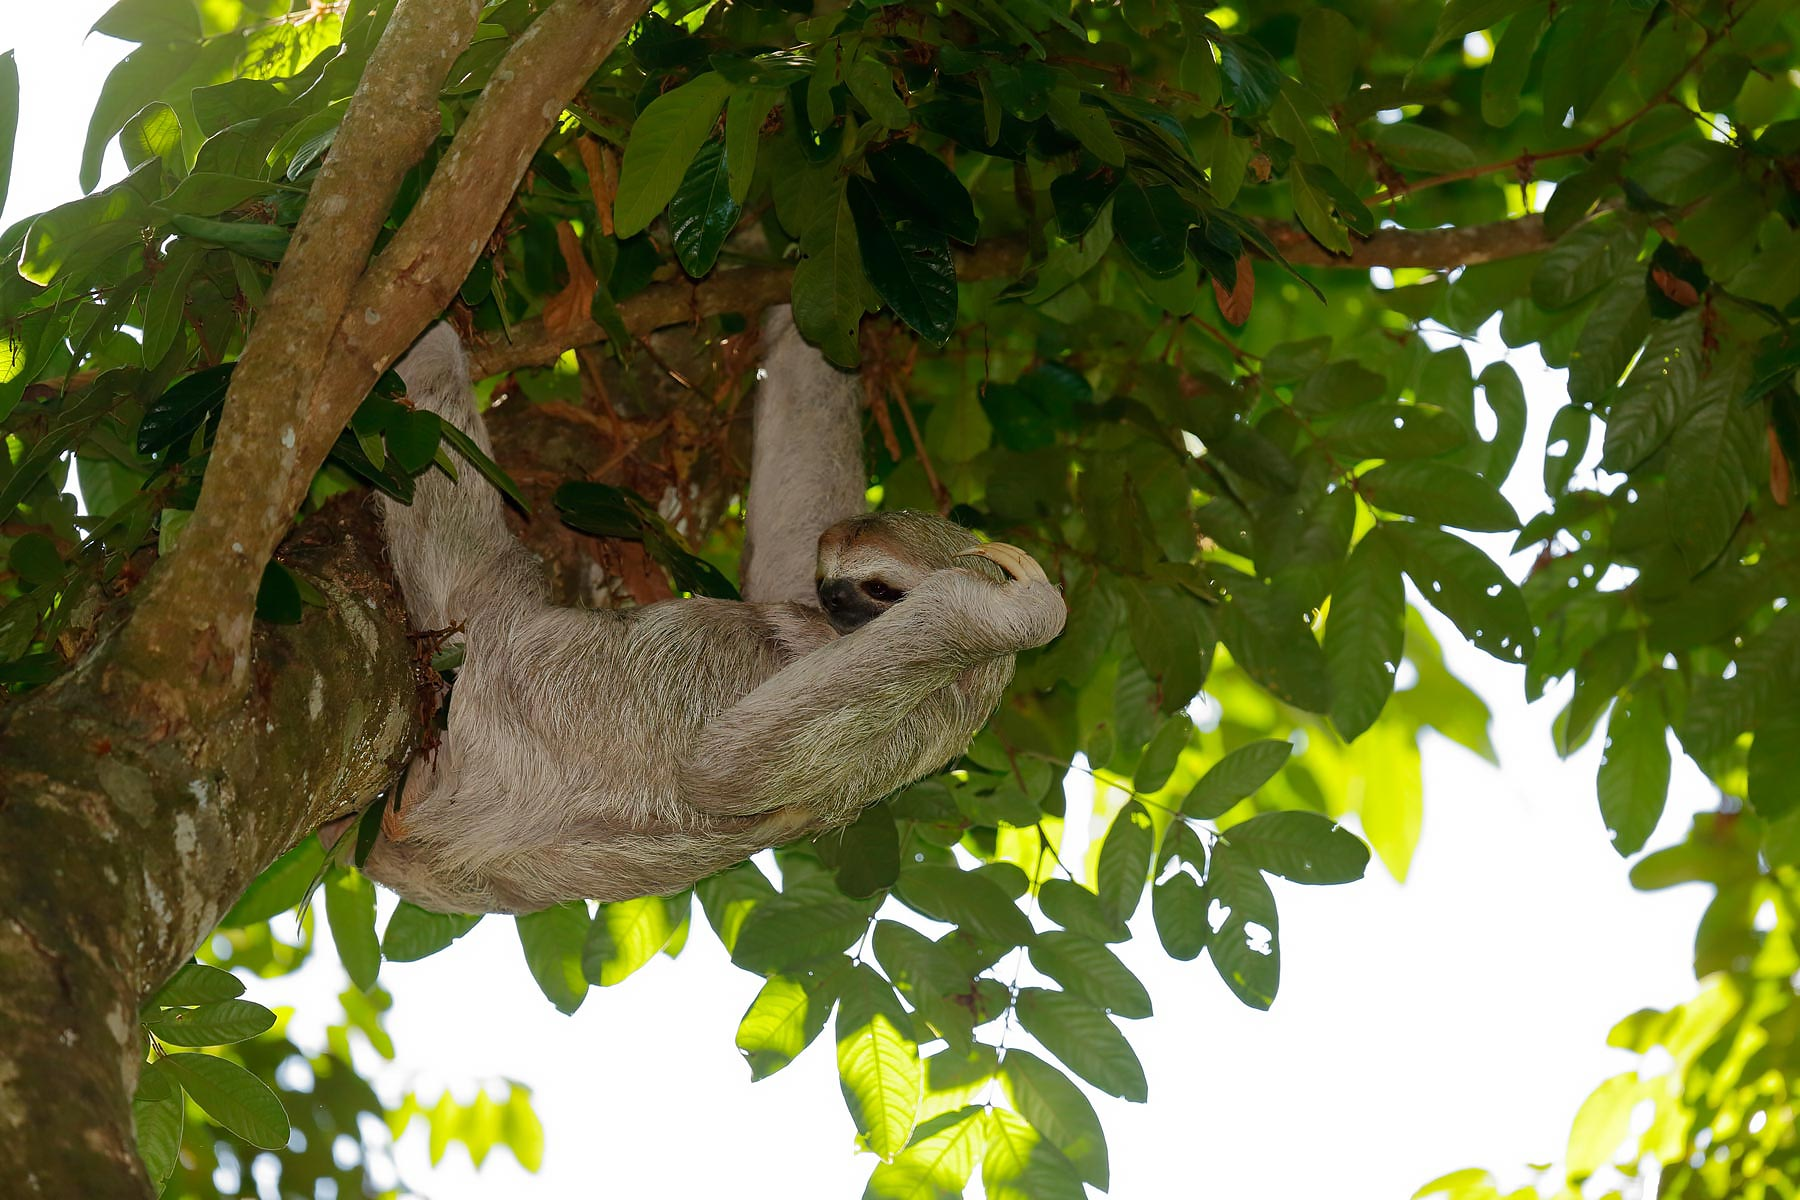 Sloth / Luiaard @ Costa Rica